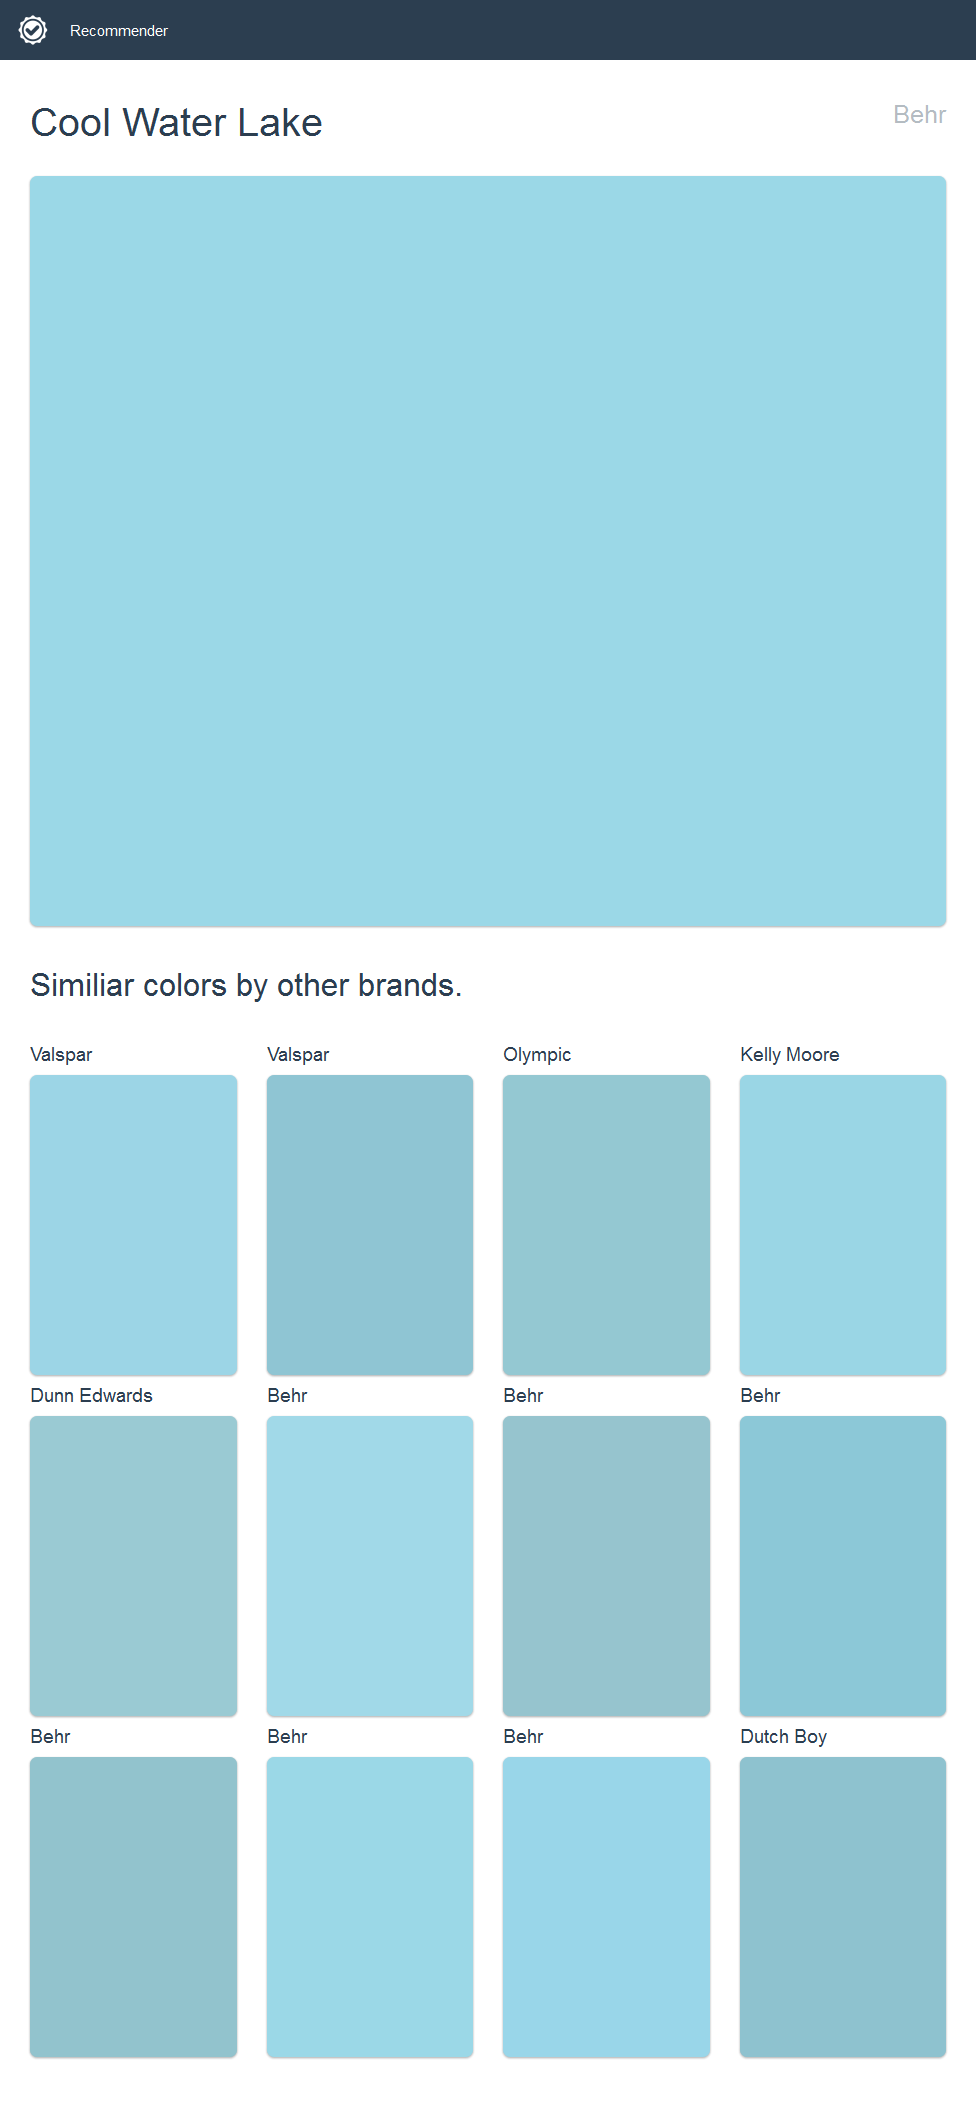 Cool Water Lake Behr Click The Image To See Similiar Colors By Other Brands House Paint Exterior Dutch Boy Paint Olympic Paint